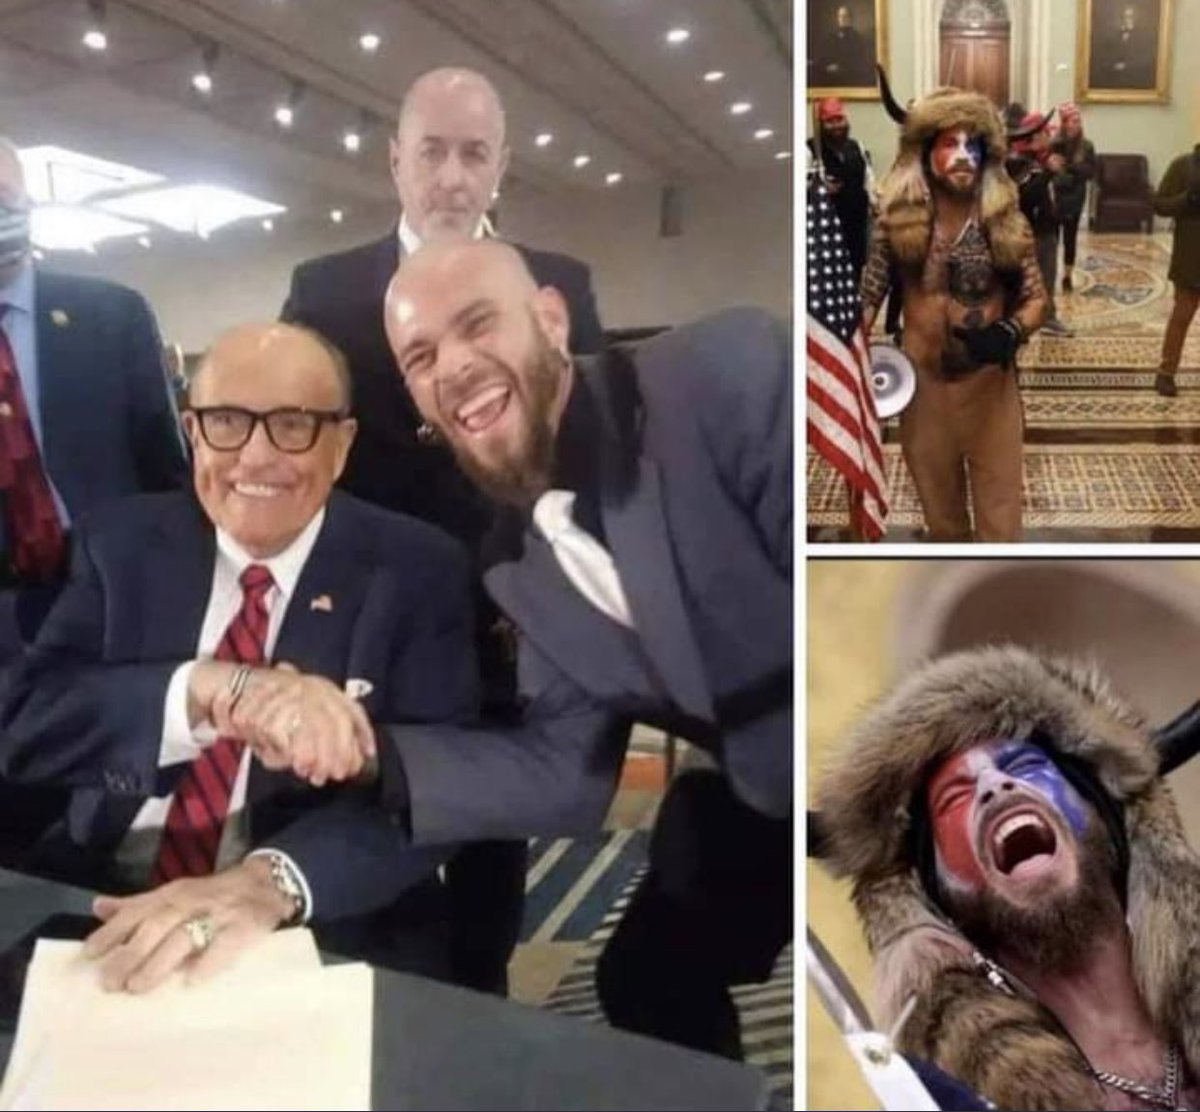 """Replying to @levparnas: """"Trial by combat"""" - Rudy Giuliani January 6, 2021  They say a picture is worth a thousand words. 👀"""